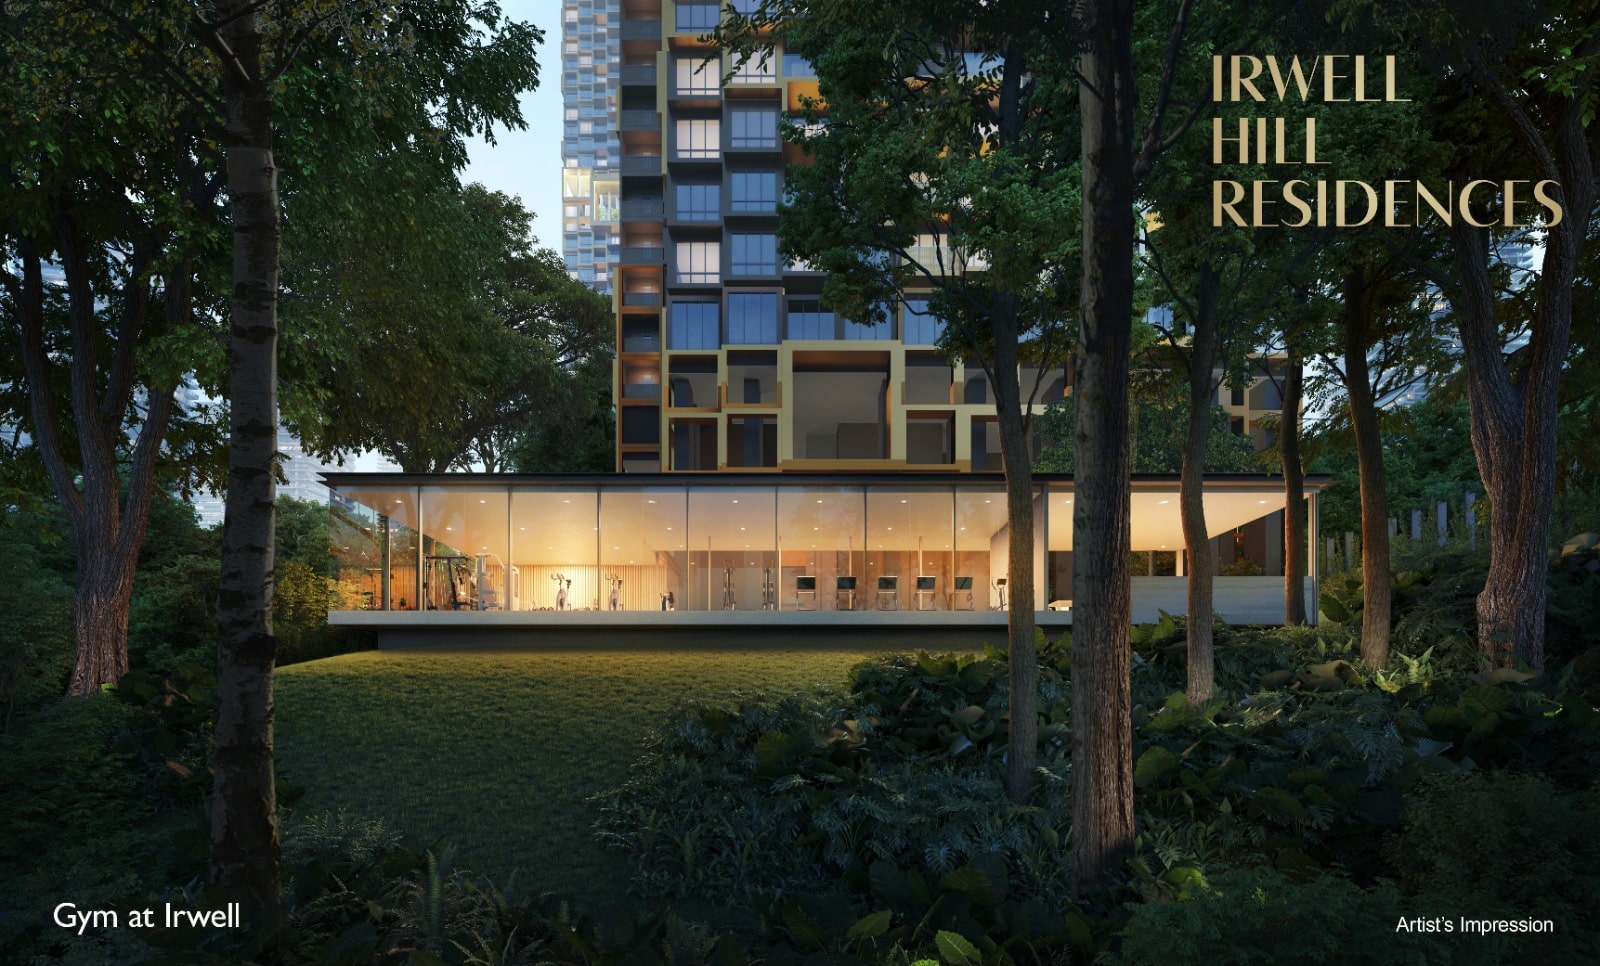 Irwell-Hill-Residences-Gym